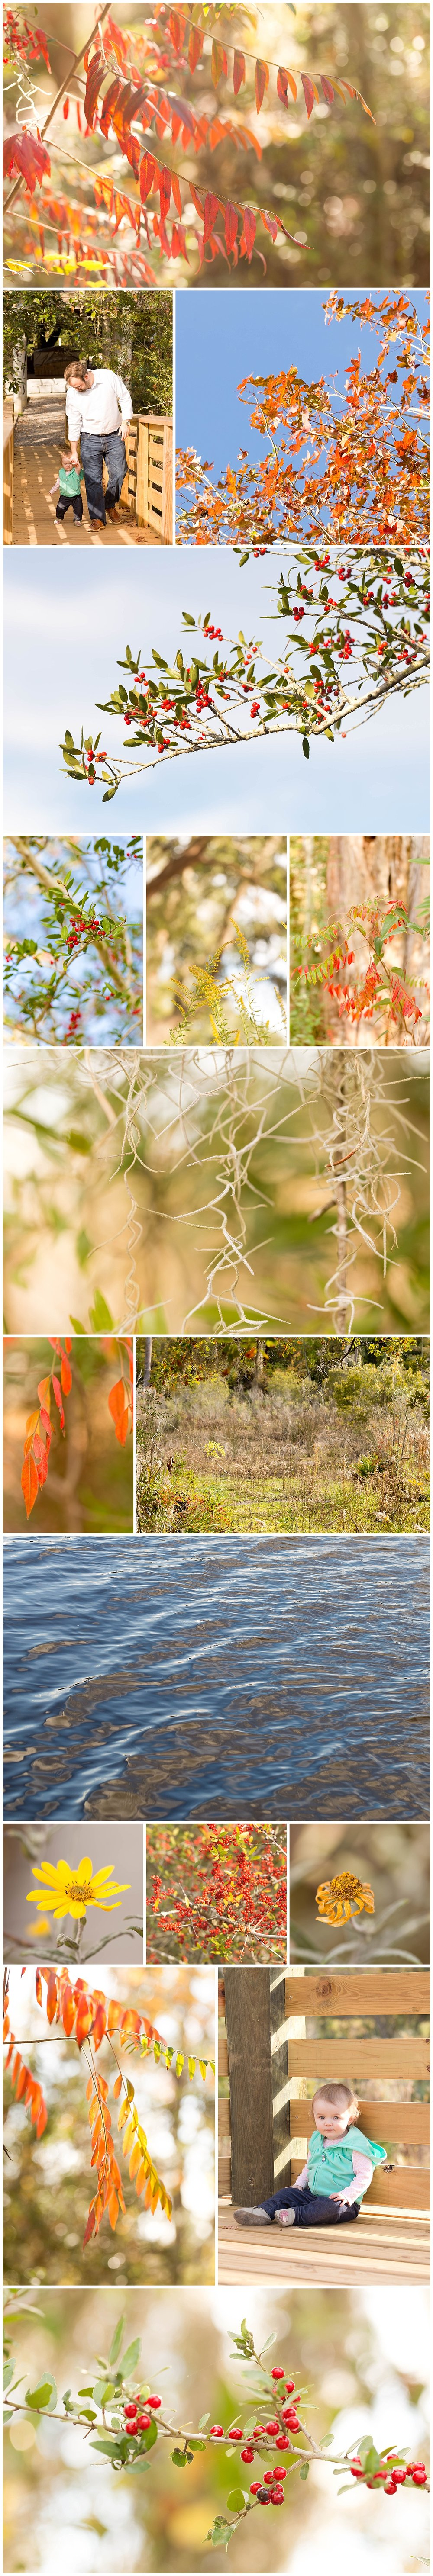 nature photography at Pascagoula River Audubon Center (Uninvented Colors Photography)